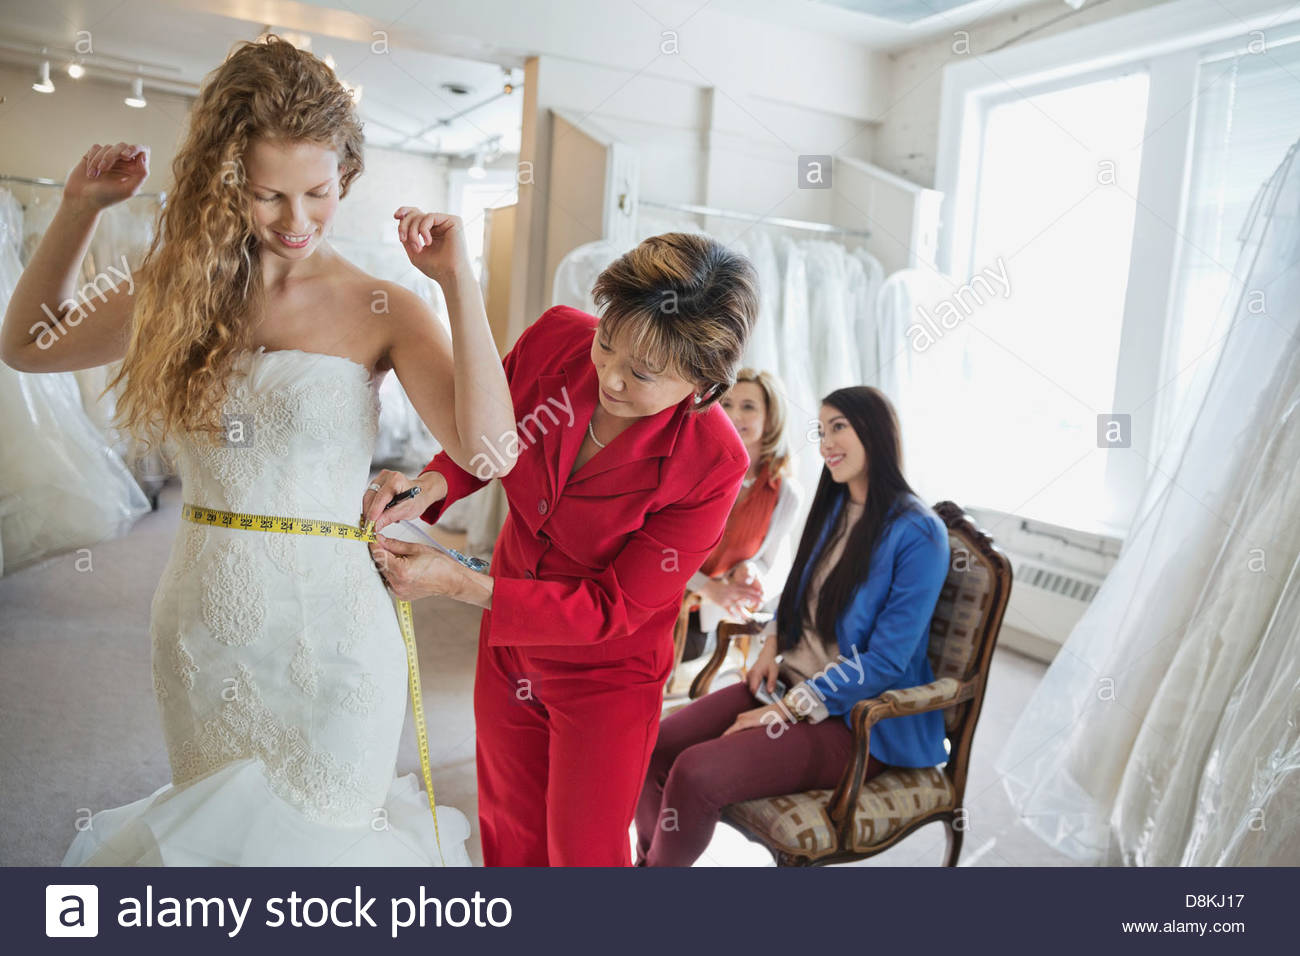 Woman tailor measuring woman in wedding dress at bridal store - Stock Image